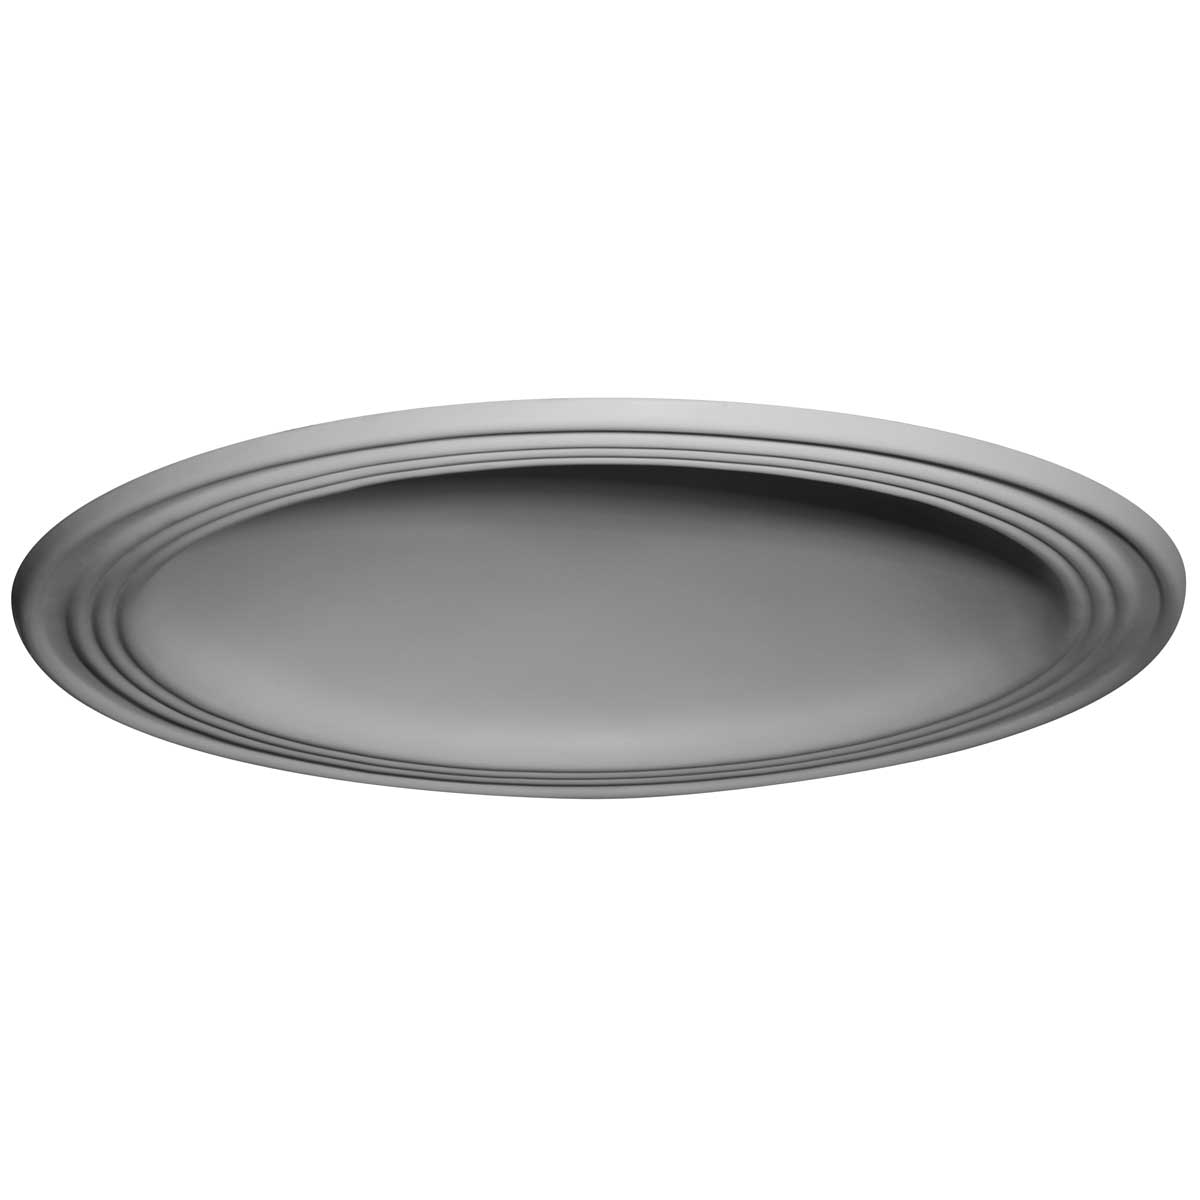 """DOME28TR 28""""OD x 22-1/2""""ID x 4-5/8""""D,2-3/4""""W Trim,Traditional Ceiling Dome (24""""Diameter x 4-1/2""""D Rough Opening)"""